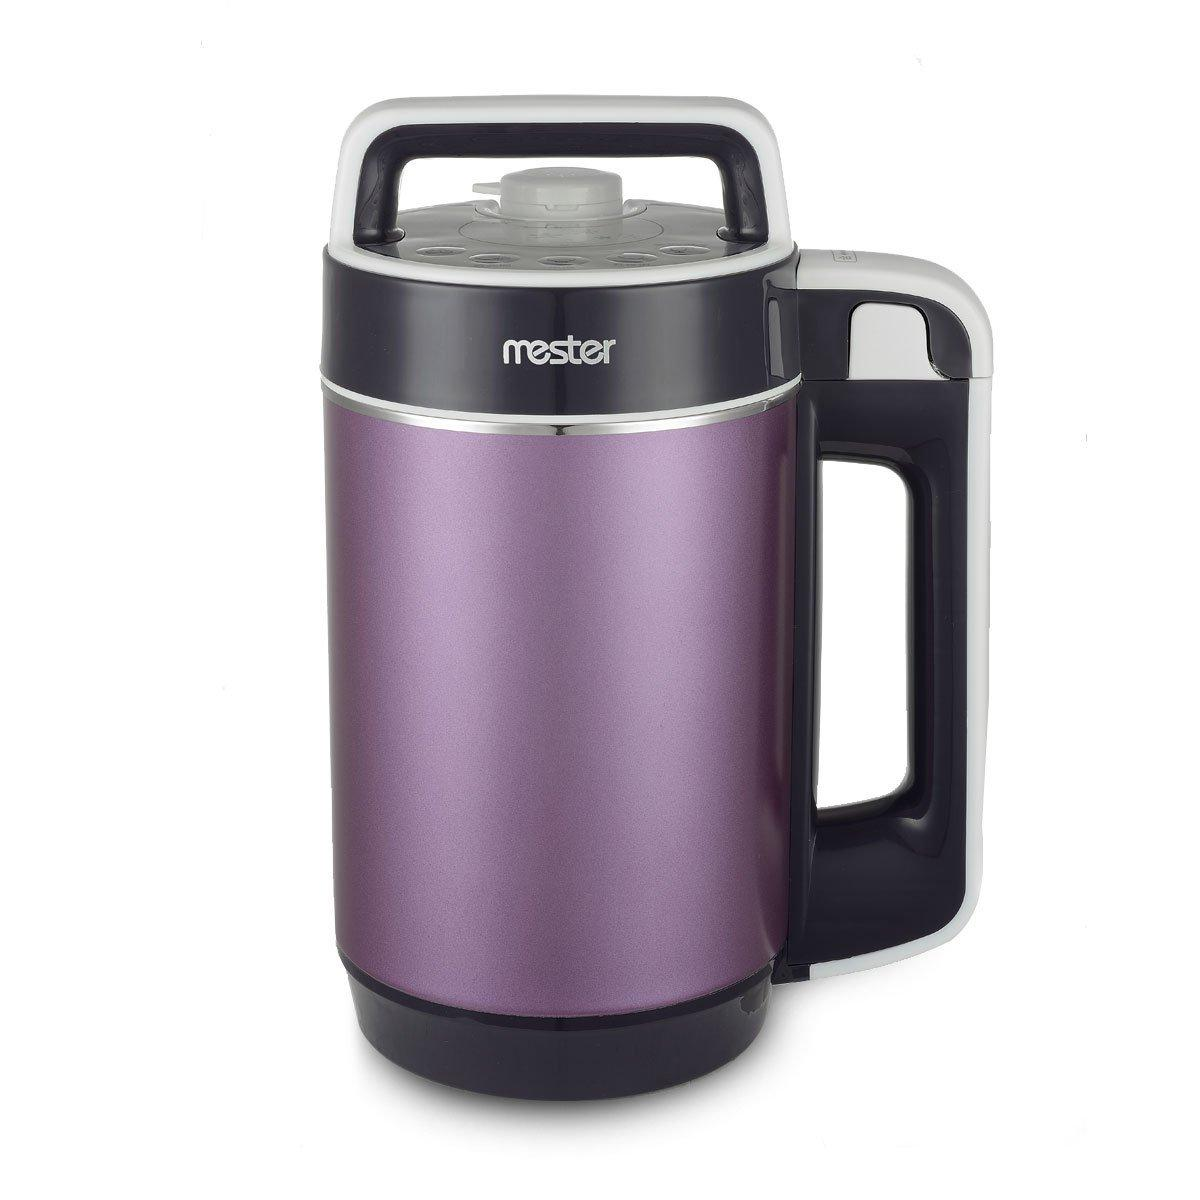 Mester Dj11b-y78 Soy Milk Maker and Soup Maker - with All Stainless Steel Inside - New Model